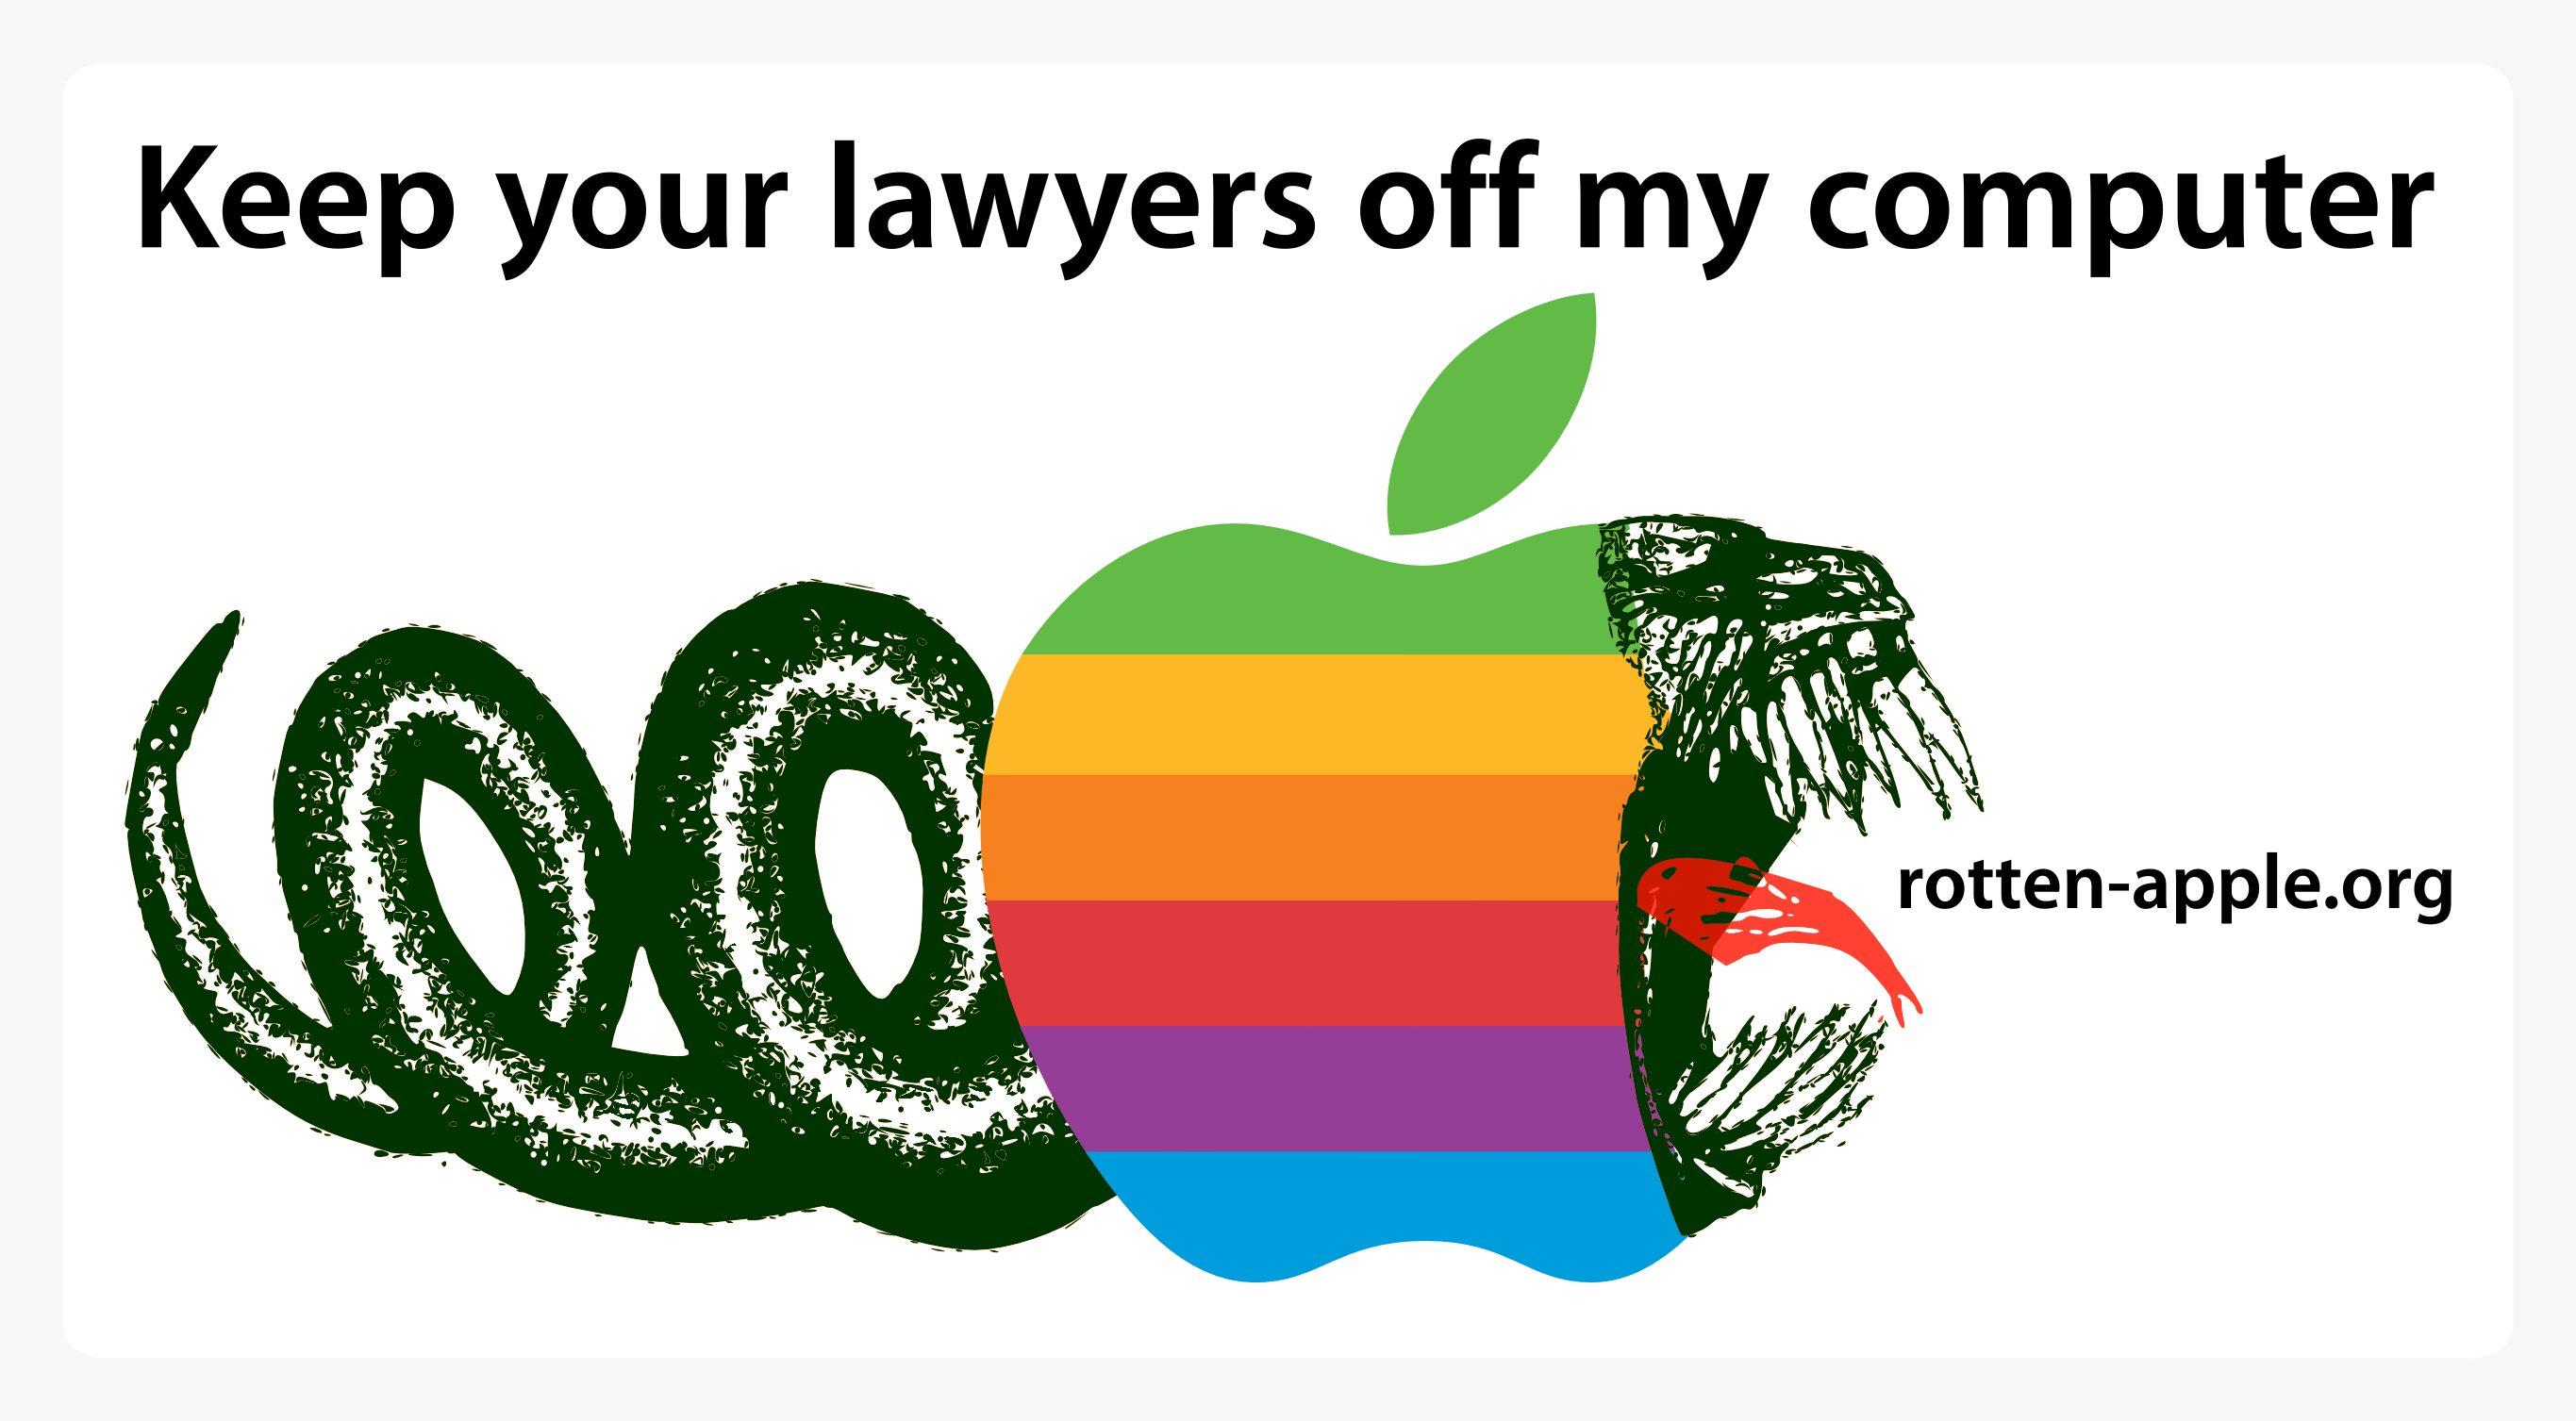 Keep your lawyers off my computer